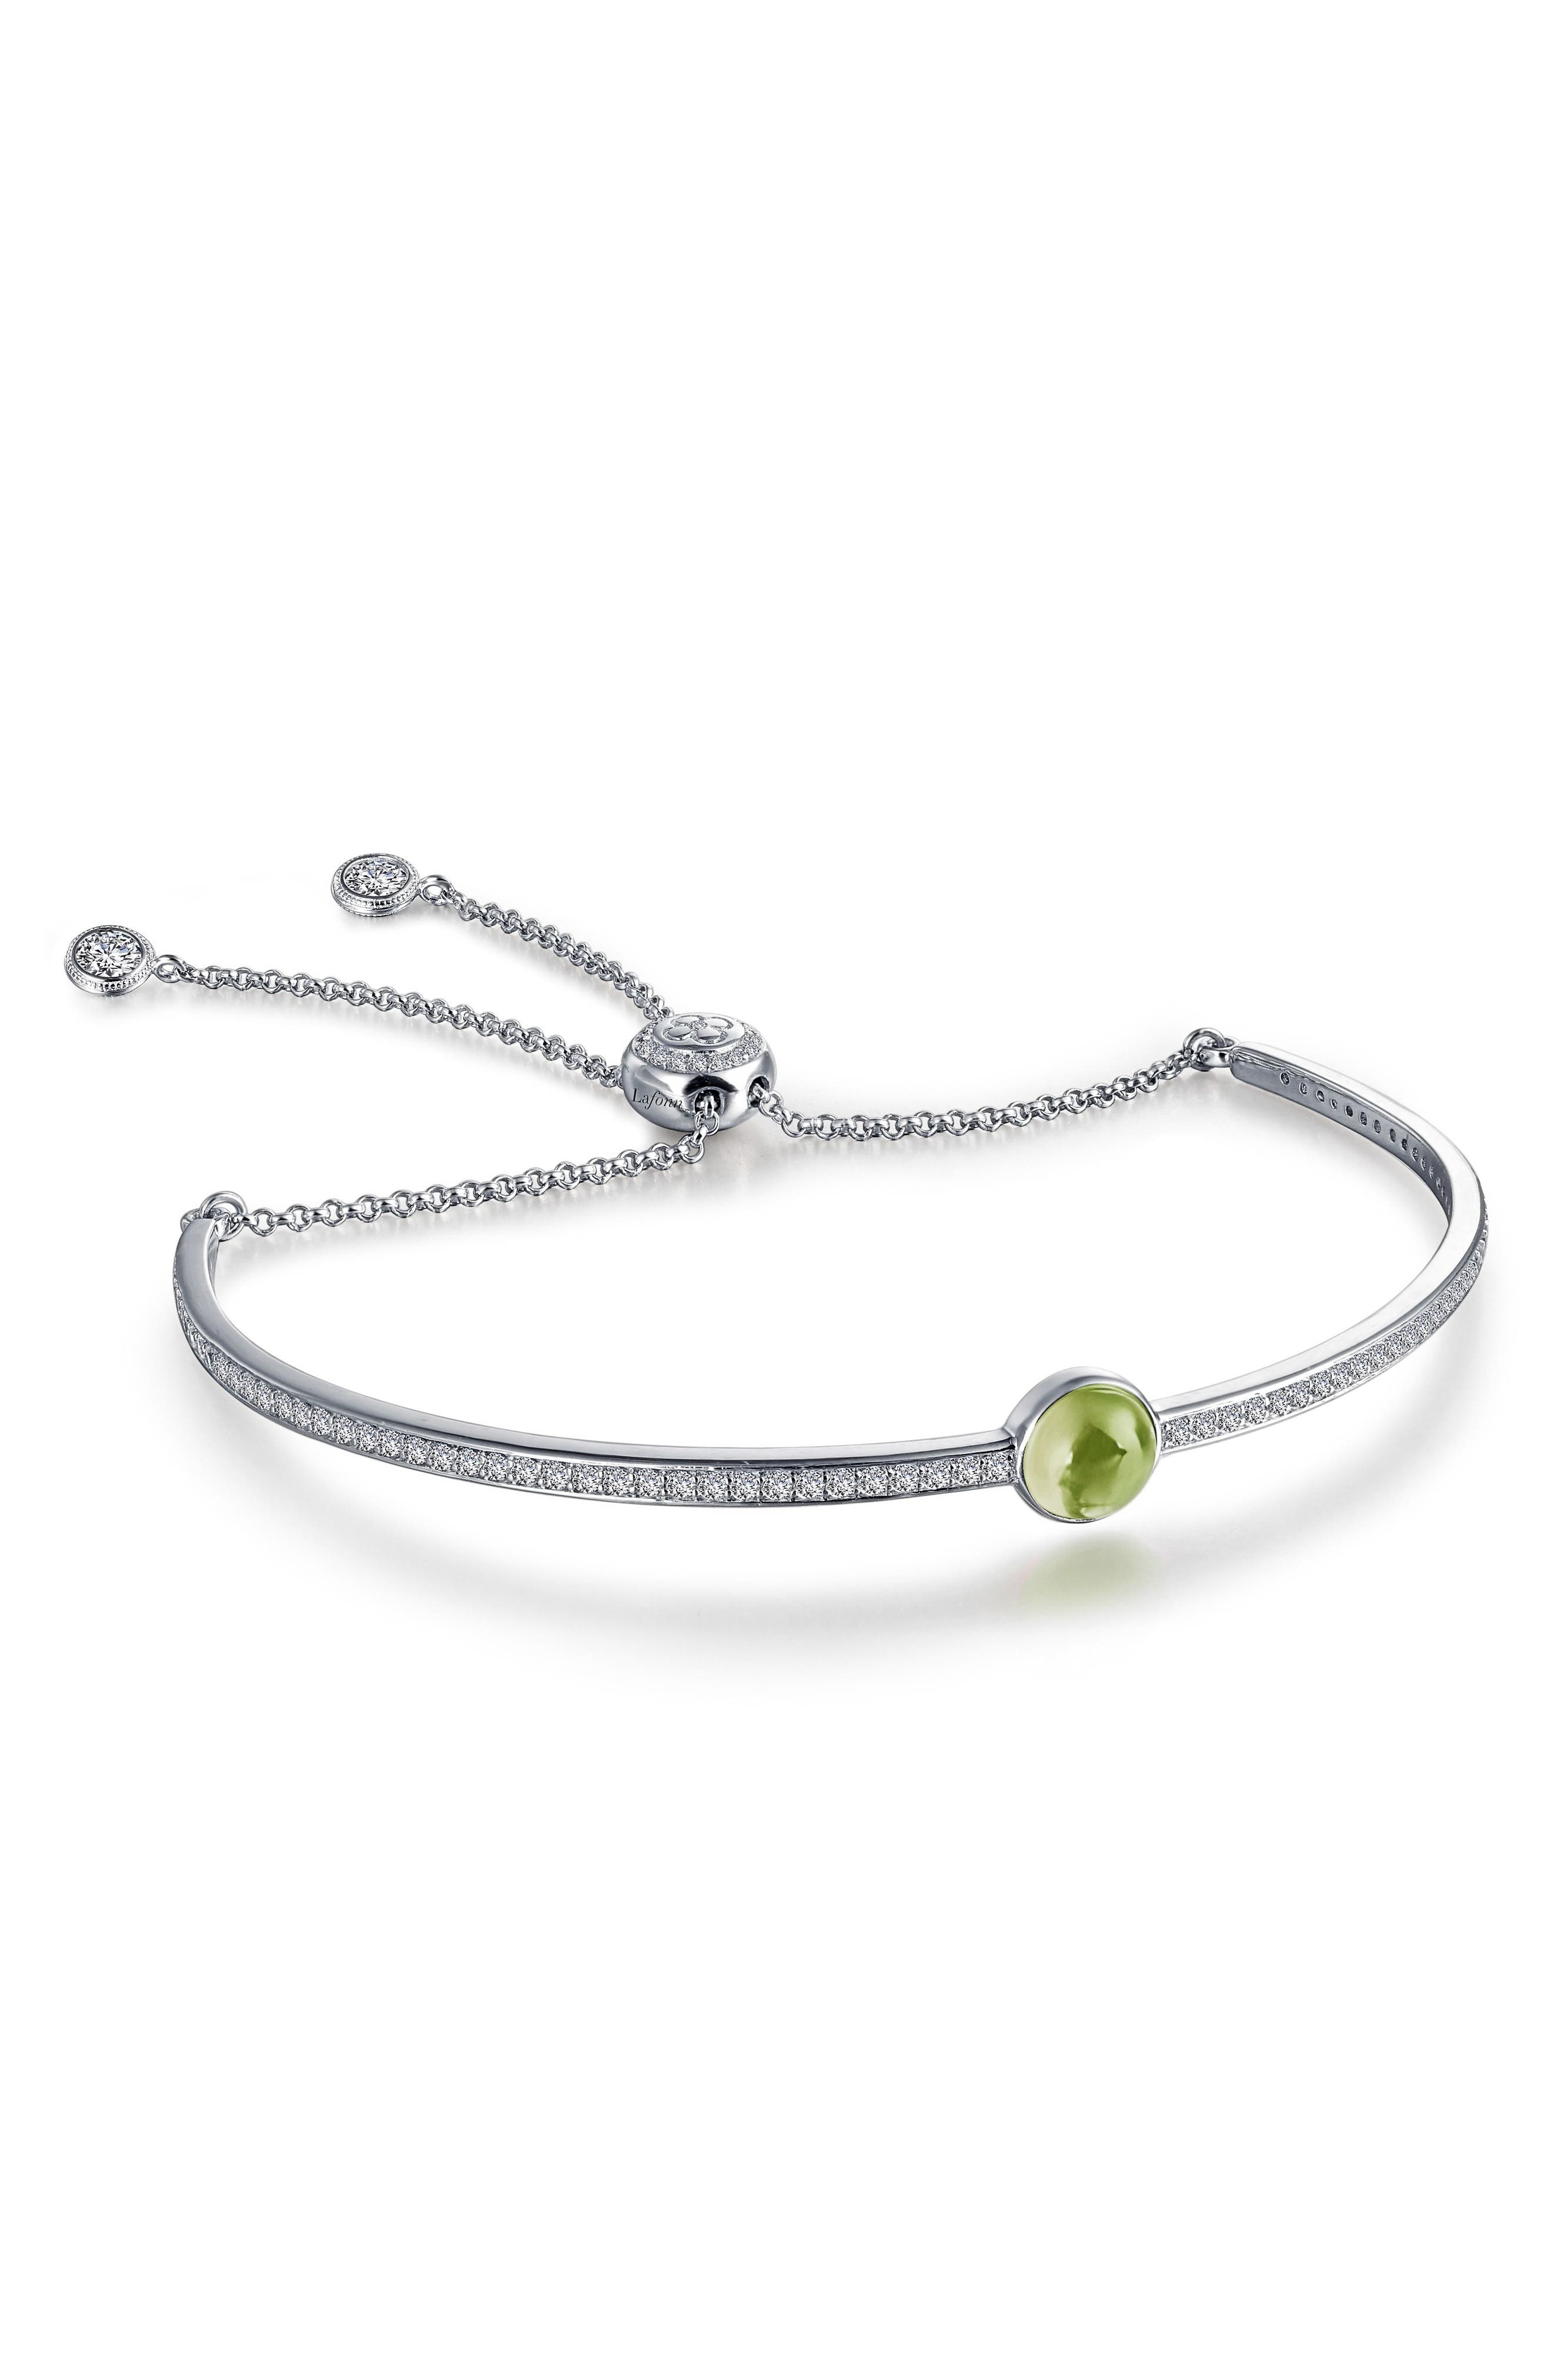 Lafonn Jewel Simulated Diamond Birthstone Bracelet